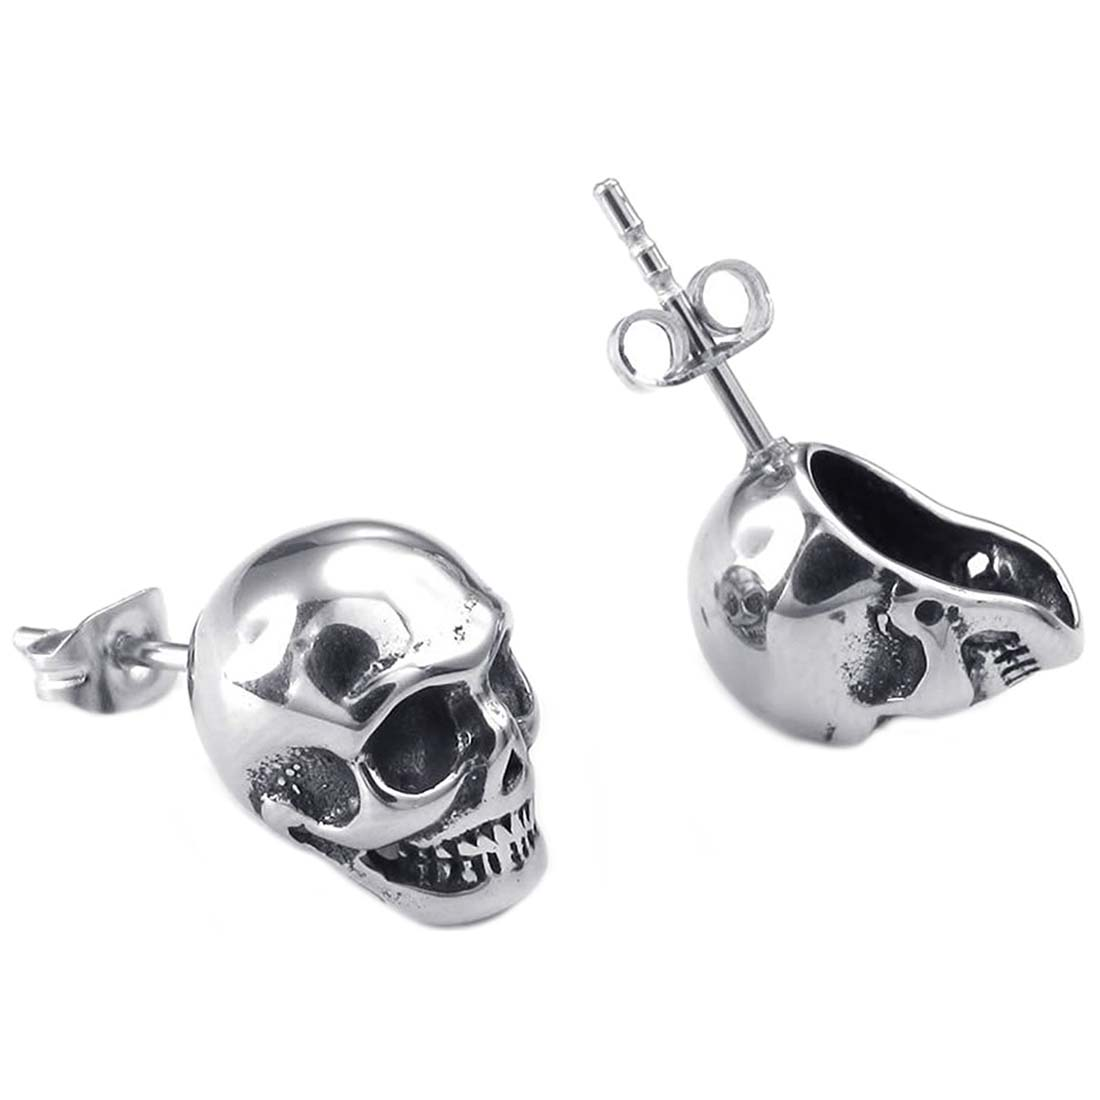 Jewelry Earrings Men - Gothic Skull Ear Studs - Stainless Steel - for Men - Color Black Silver - With Gift Bag